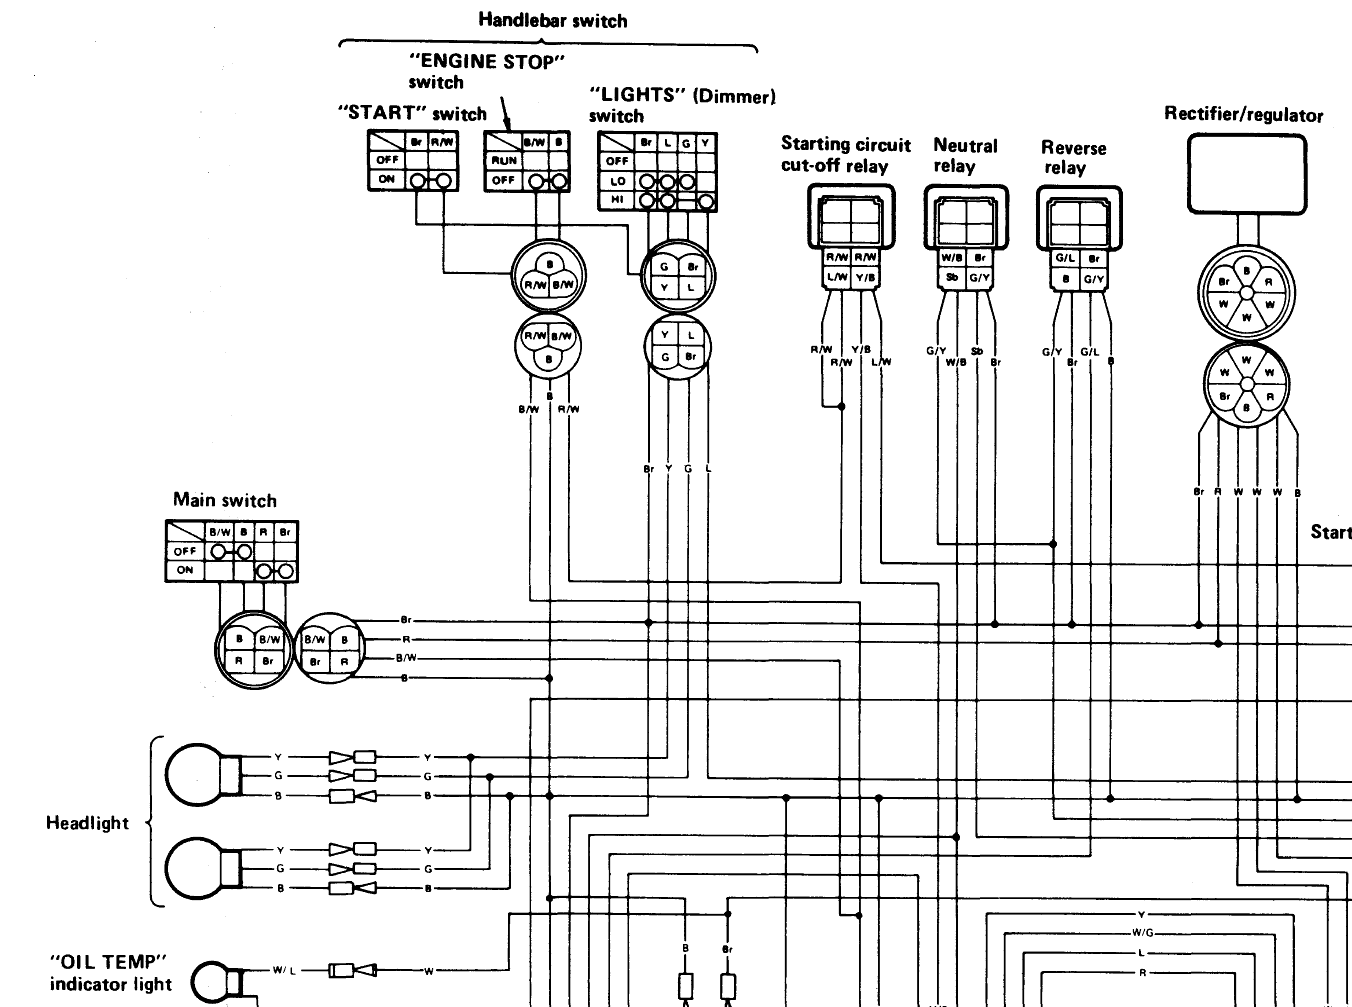 1993 Yamaha Warrior 350 Wiring Diagram : Sample